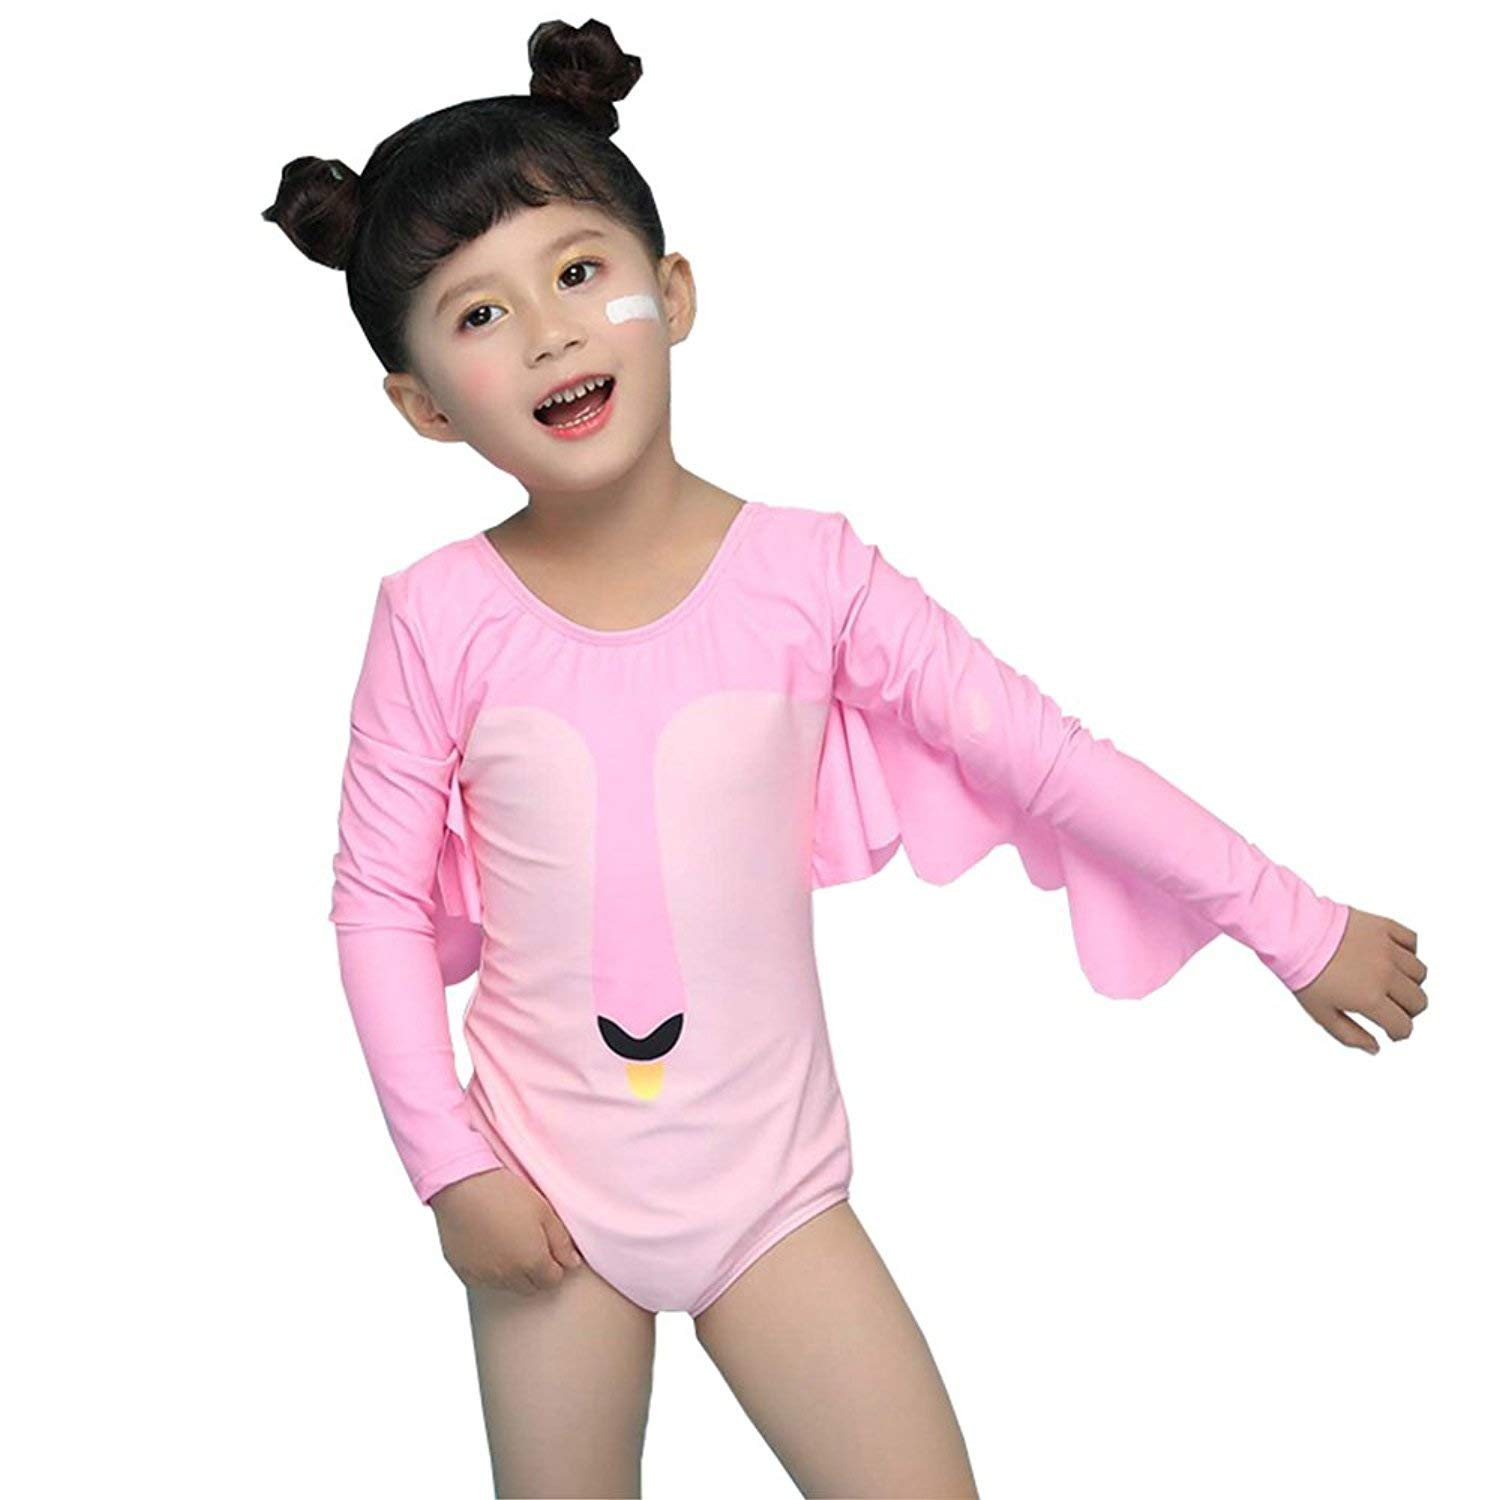 d51366e0ca8fd Get Quotations · O.G.KID Baby Swimsuits Swimwear for Girls Long Sleeve One  Piece Swimming Suits 2-8